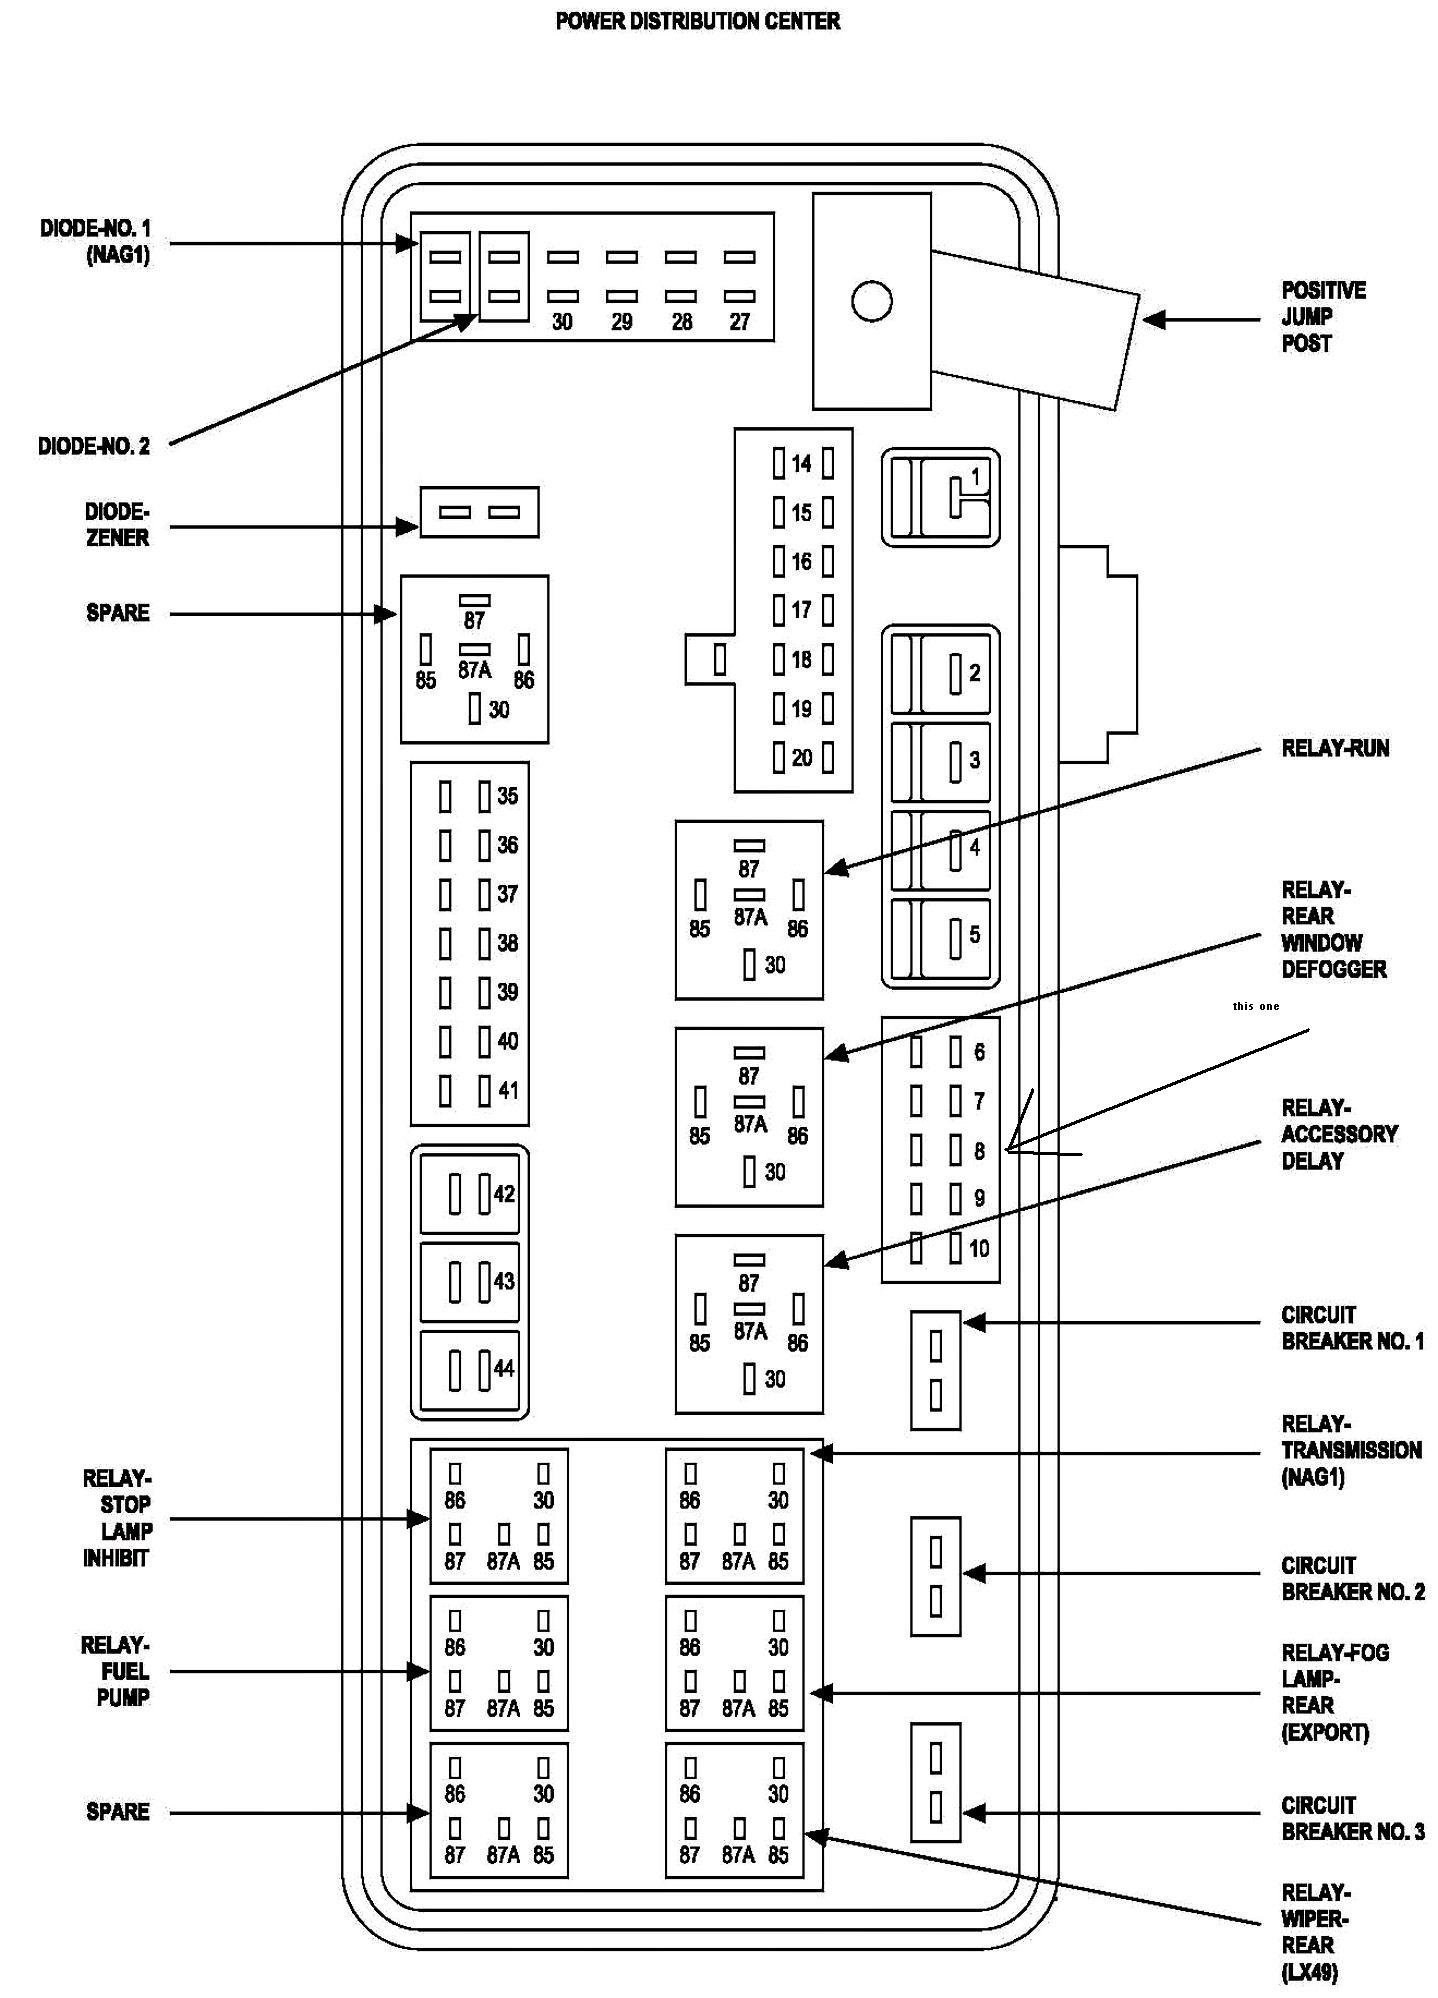 2003 Chrysler Concorde Fuse Diagram - Data Wiring Diagram Update